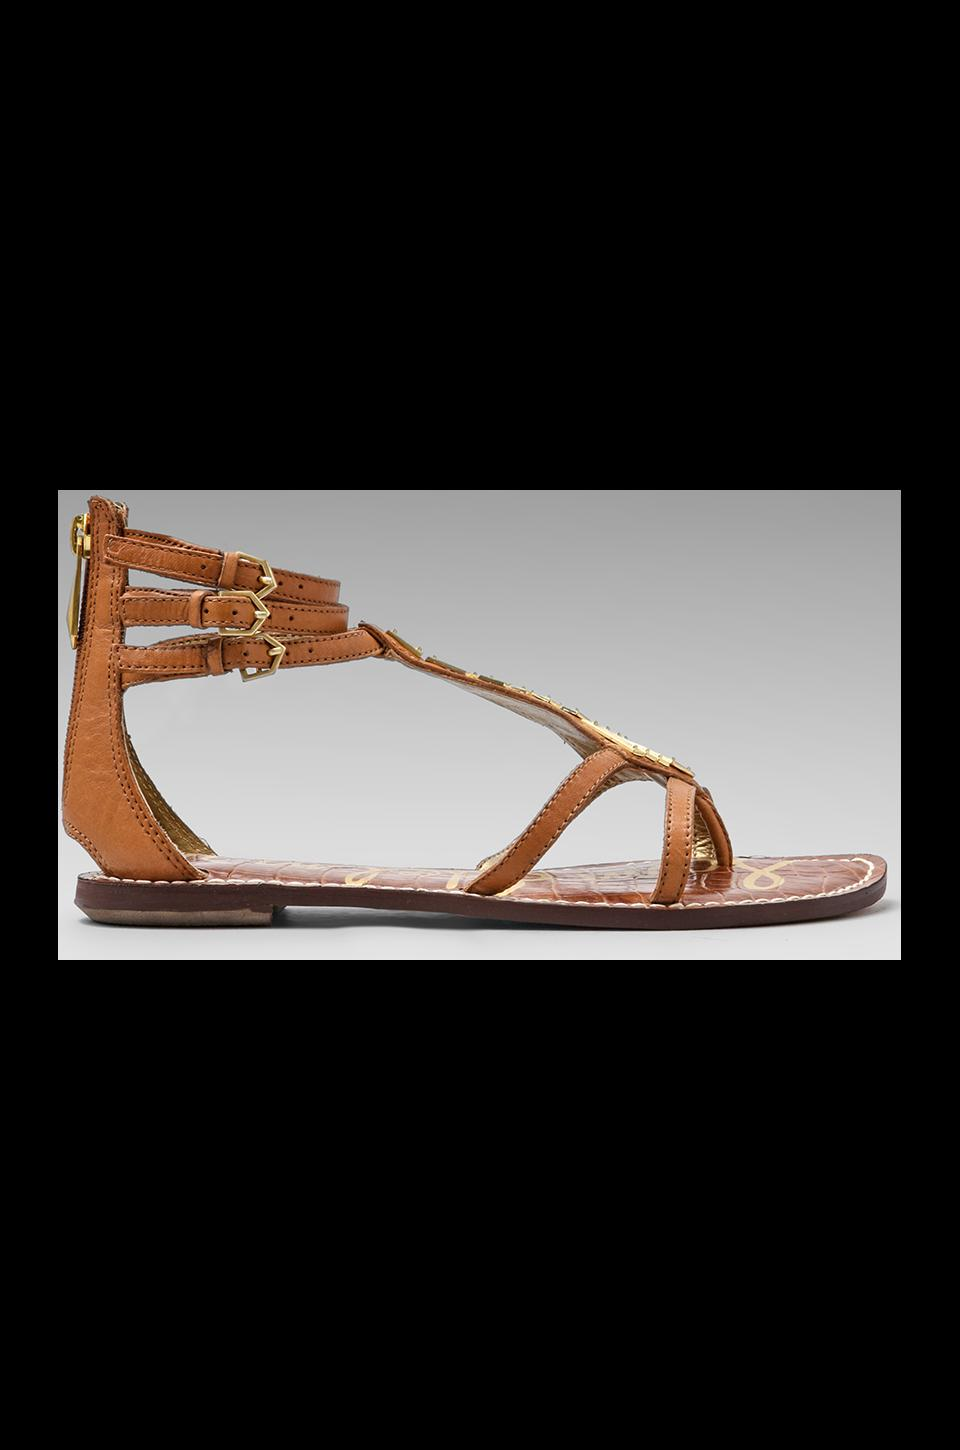 Sam Edelman Genna Sandal in Saddle